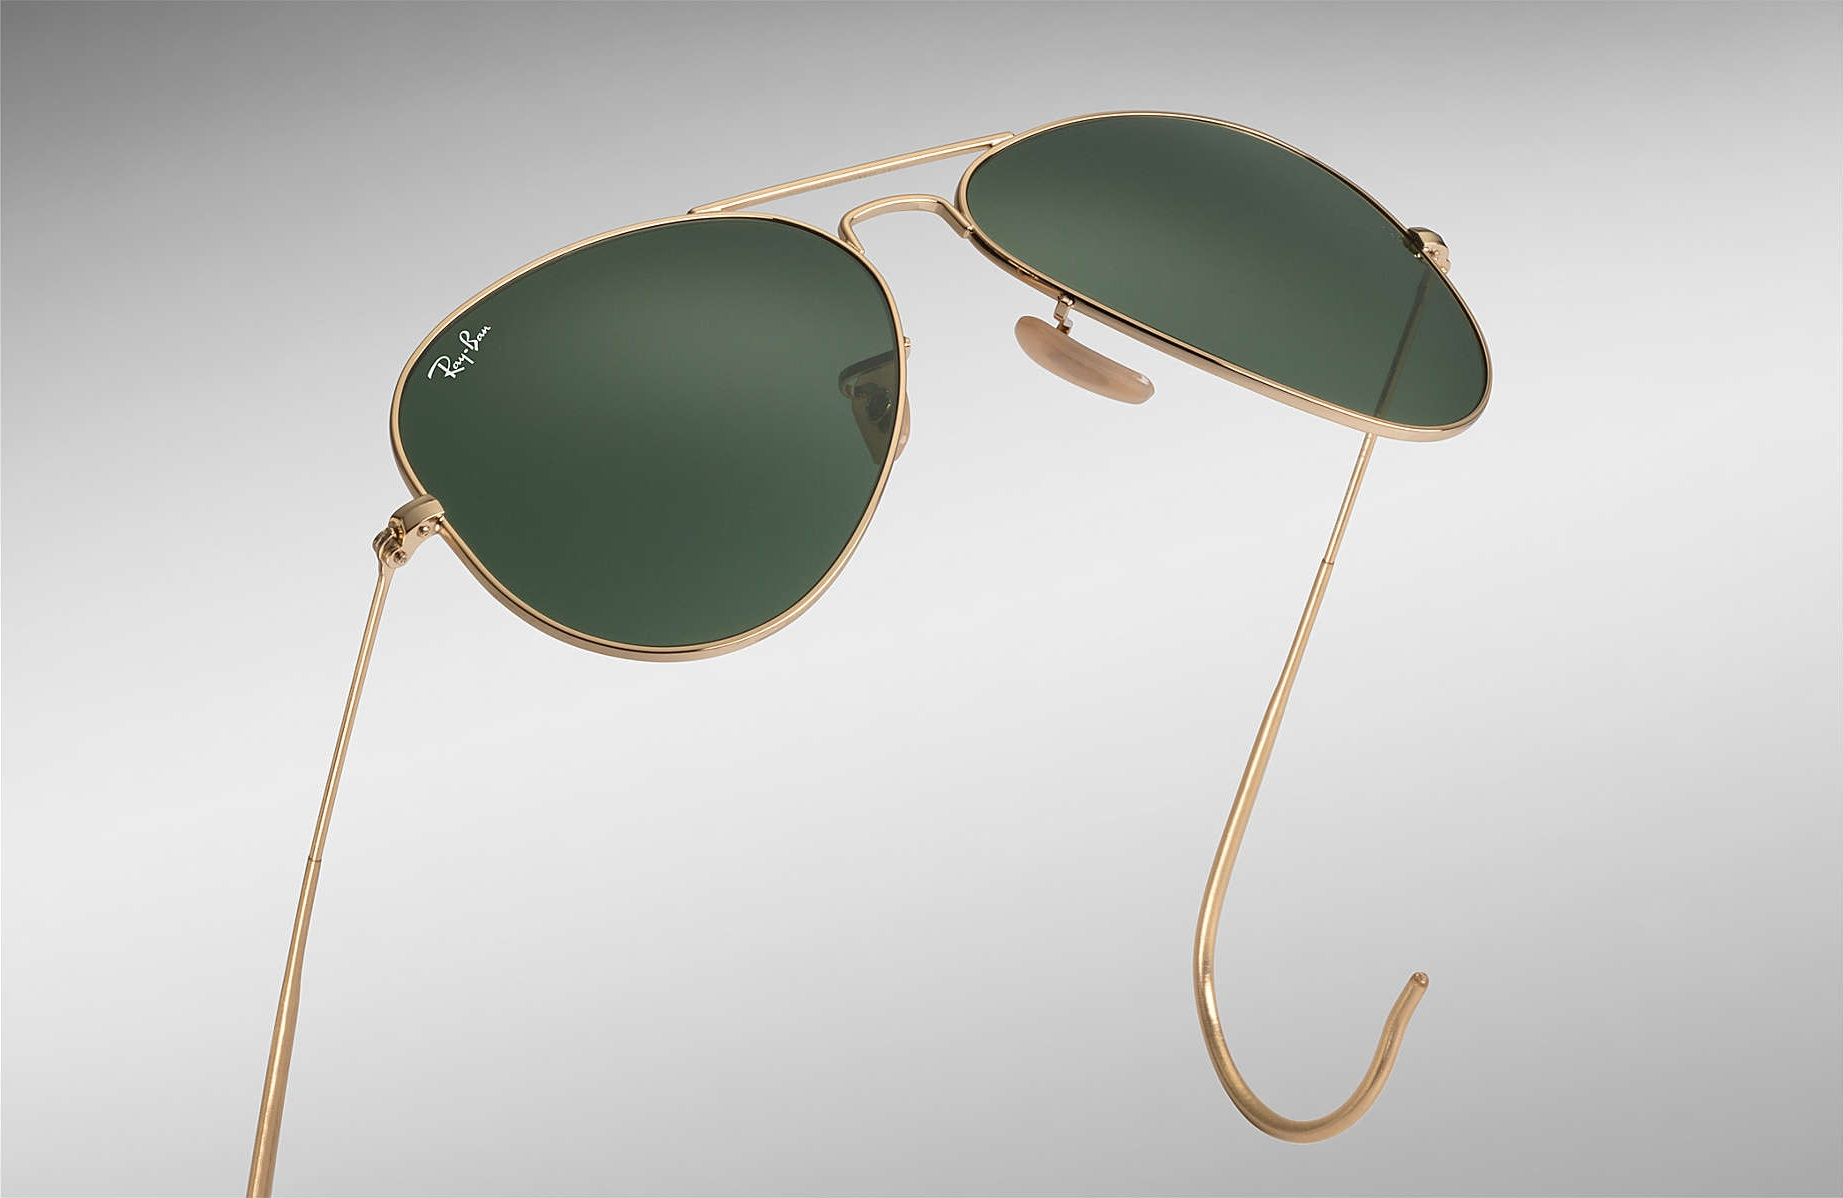 bf4a2436f9 Ray-Ban Reloaded  The Classic Aviator Reinvented for the Modern Man ...